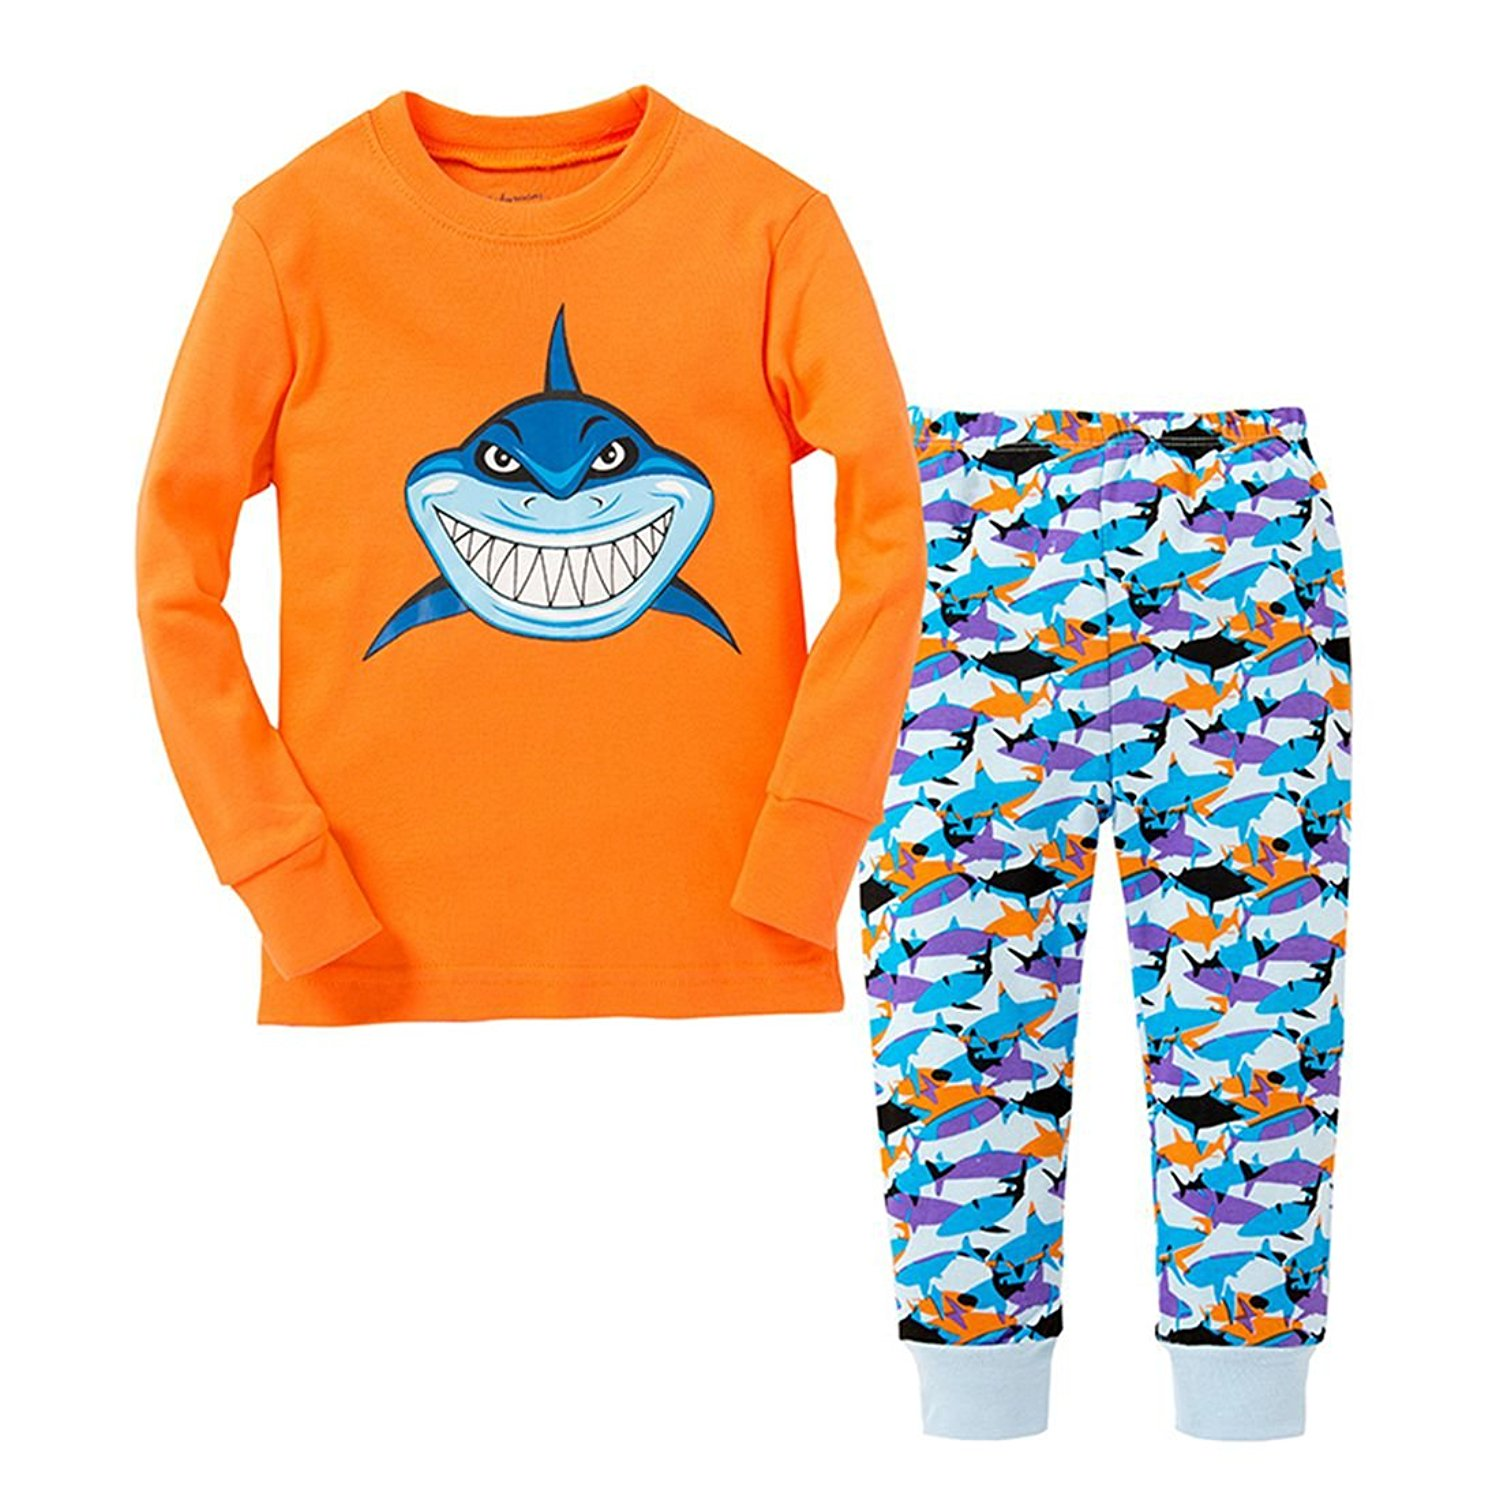 3a0488e5f2 Get Quotations · Boys Pajamas Shark Childrens Pjs Rib Long Sleeves Toddler Clothes  Clothes Set